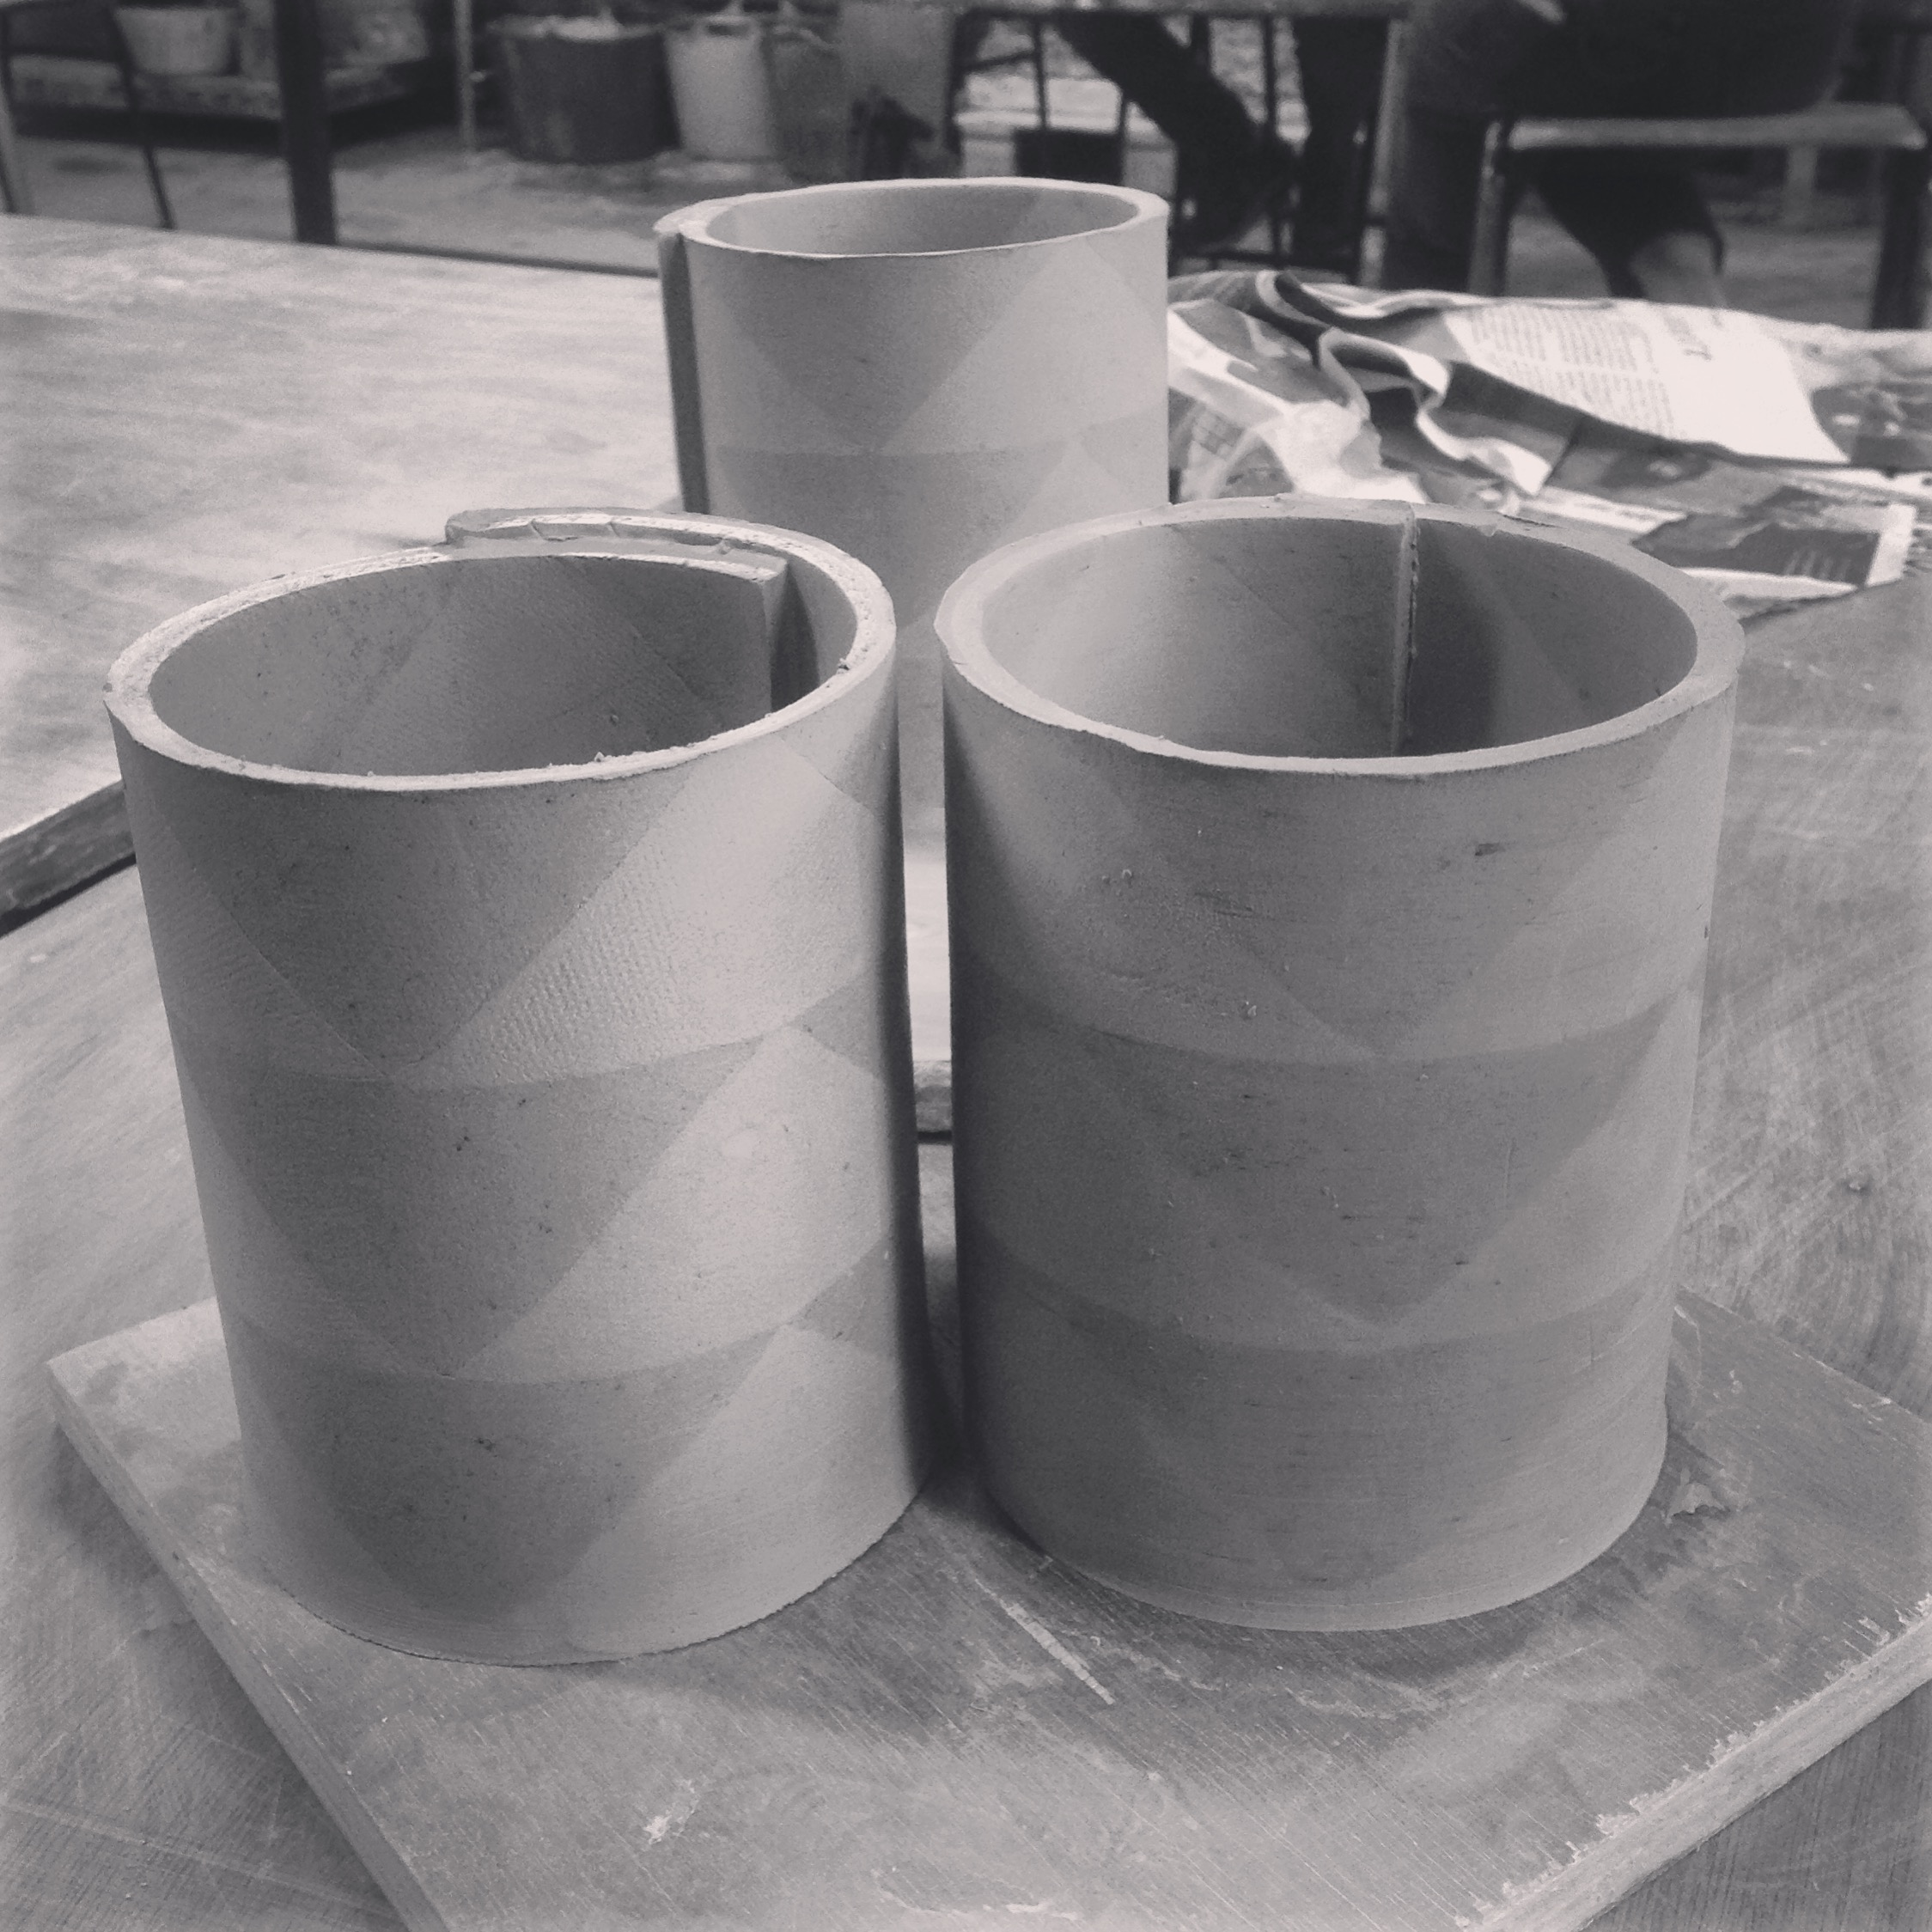 Lazy Glaze hand built stained clay pots.